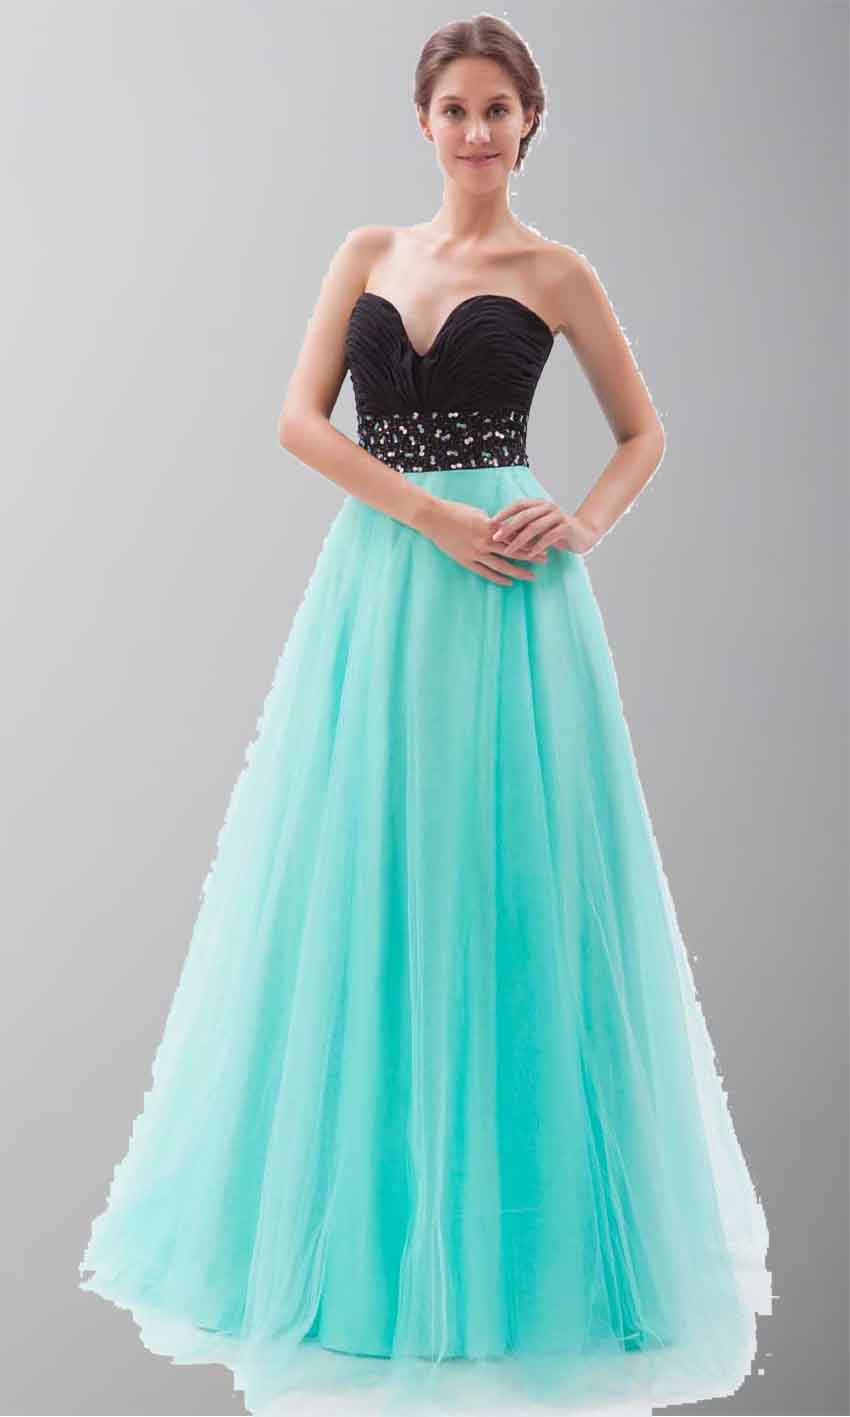 Black And Teal Soft Tulle Long Princess Prom Dresses KSP264 [KSP264] - £99.00 : Cheap Prom Dresses Uk, Bridesmaid Dresses, 2014 Prom & Evening Dresses, Look for cheap elegant prom dresses 2014, cocktail gowns, or dresses for special occasions? kissprom.co.uk offers various bridesmaid dresses, evening dress, free shipping to UK etc.